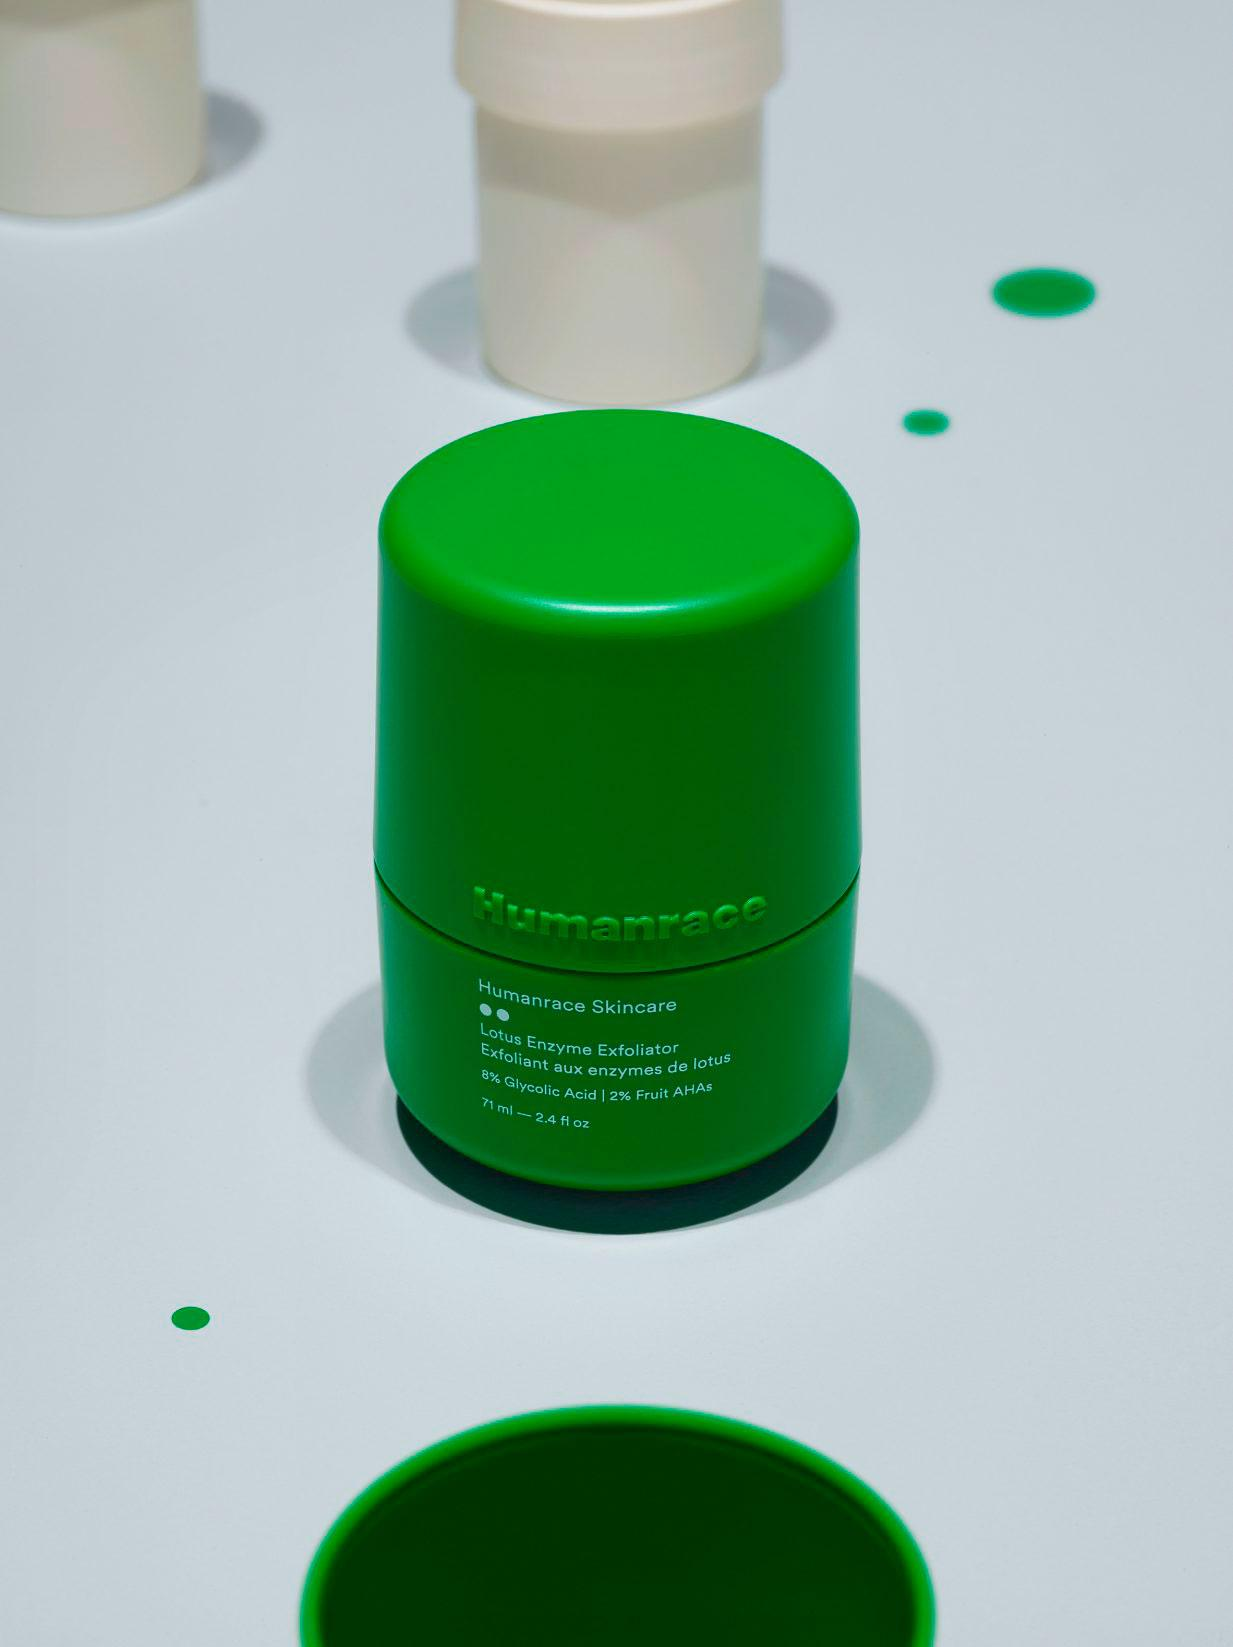 Pharrell Williams Humanrace Lotus exfoliator in bright green packaging against white background